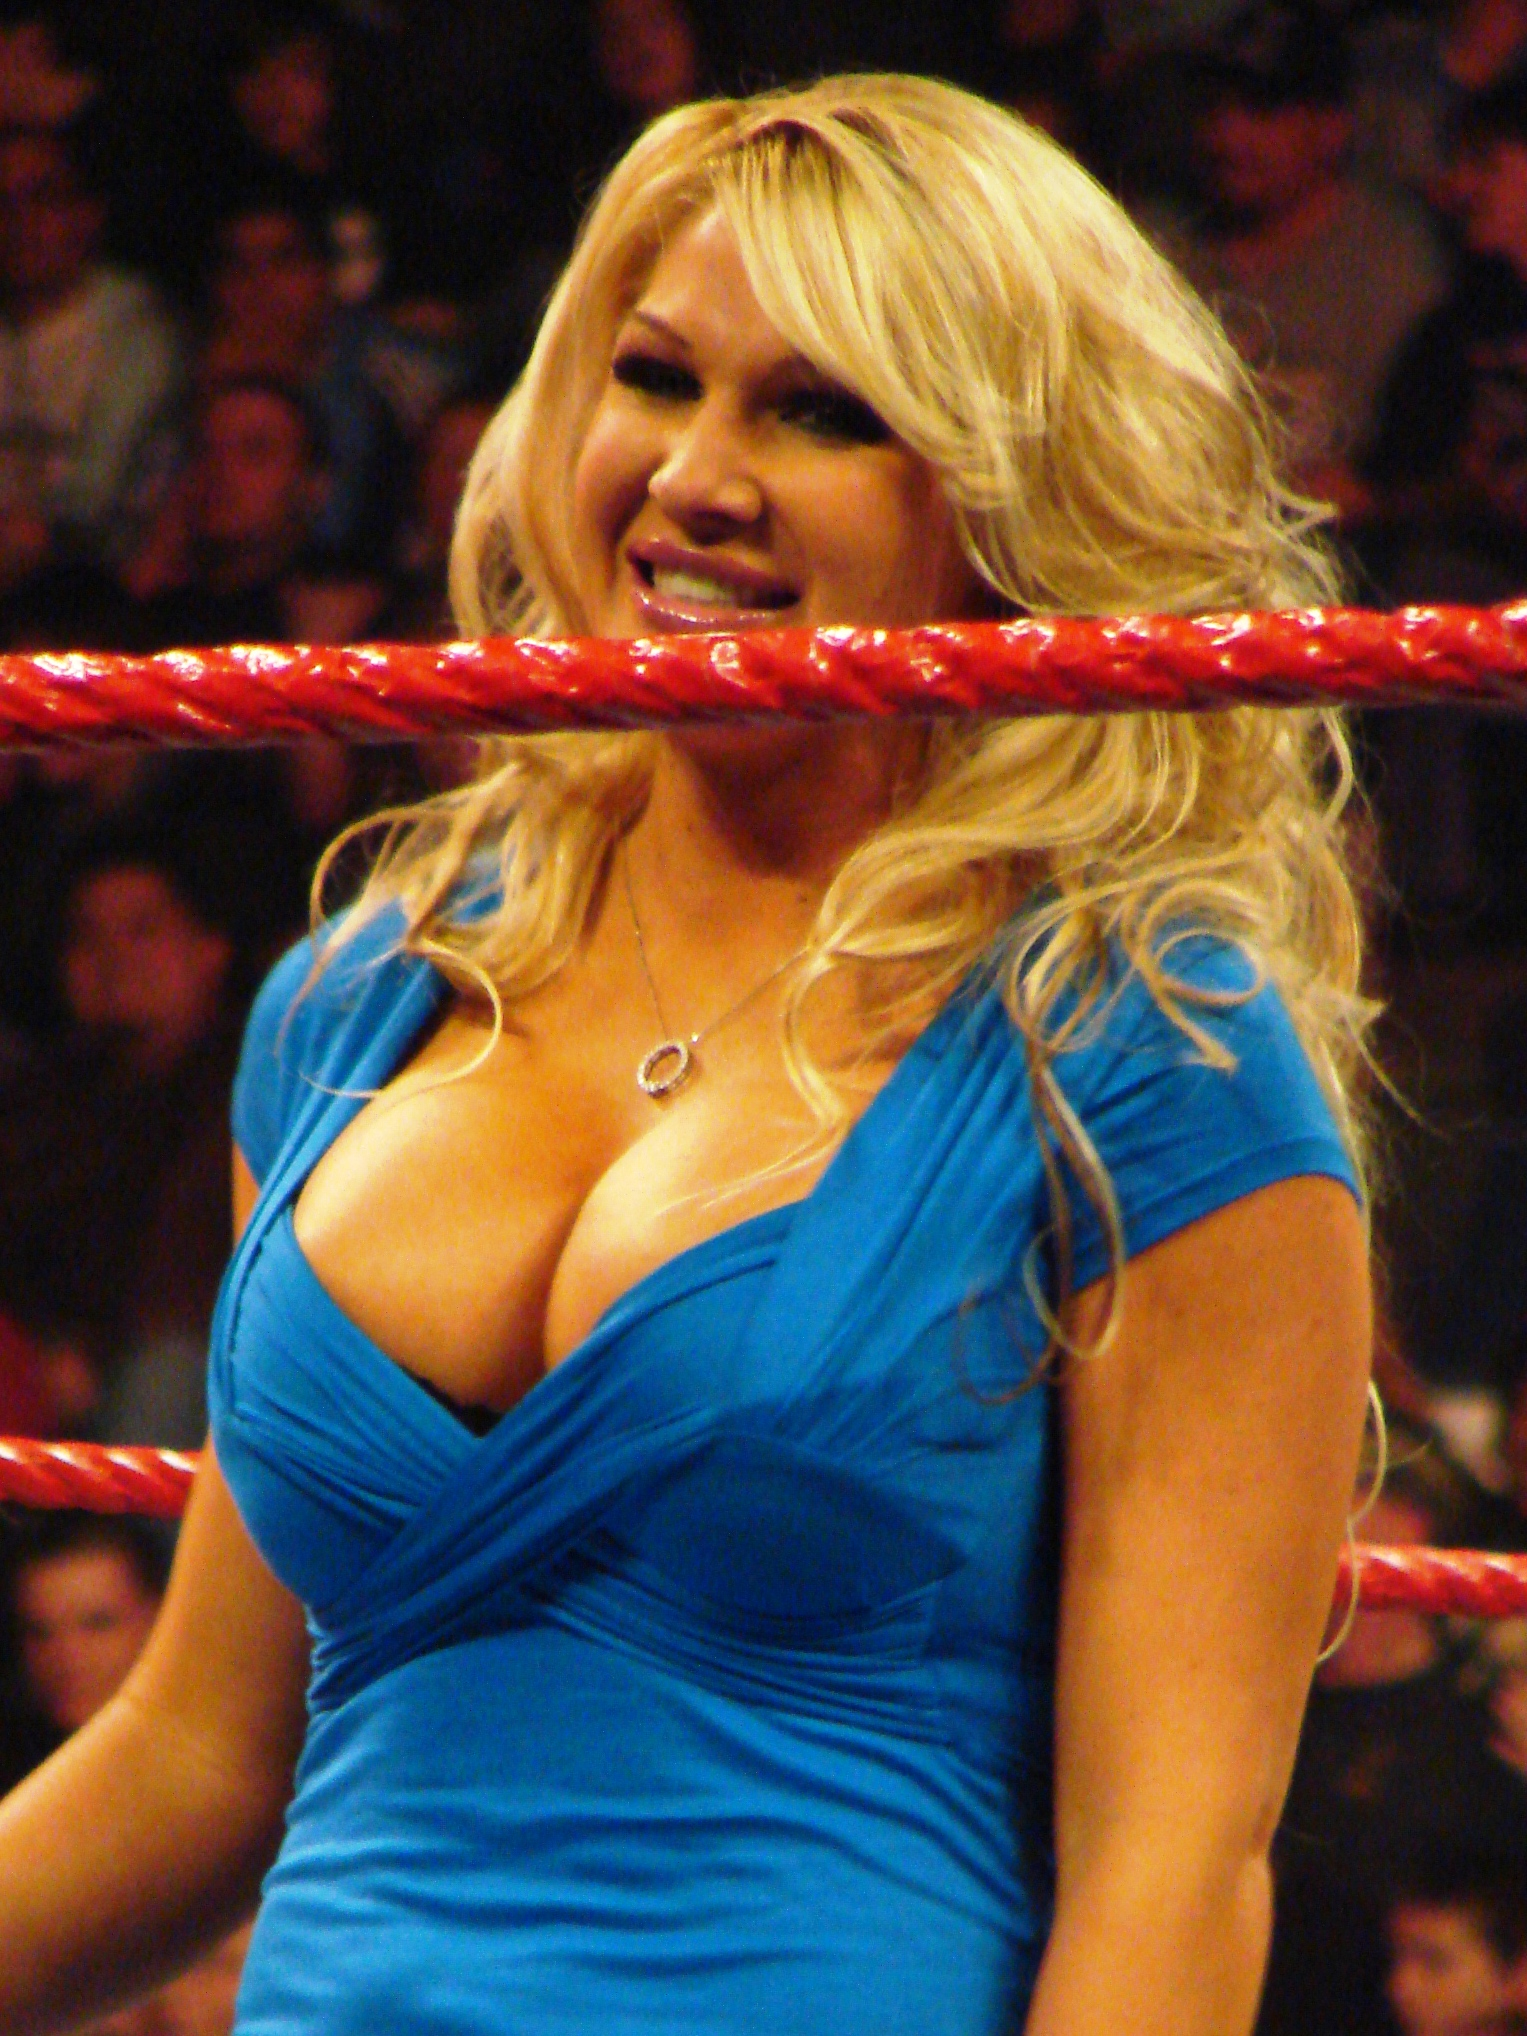 Wwe jillian hall that interrupt